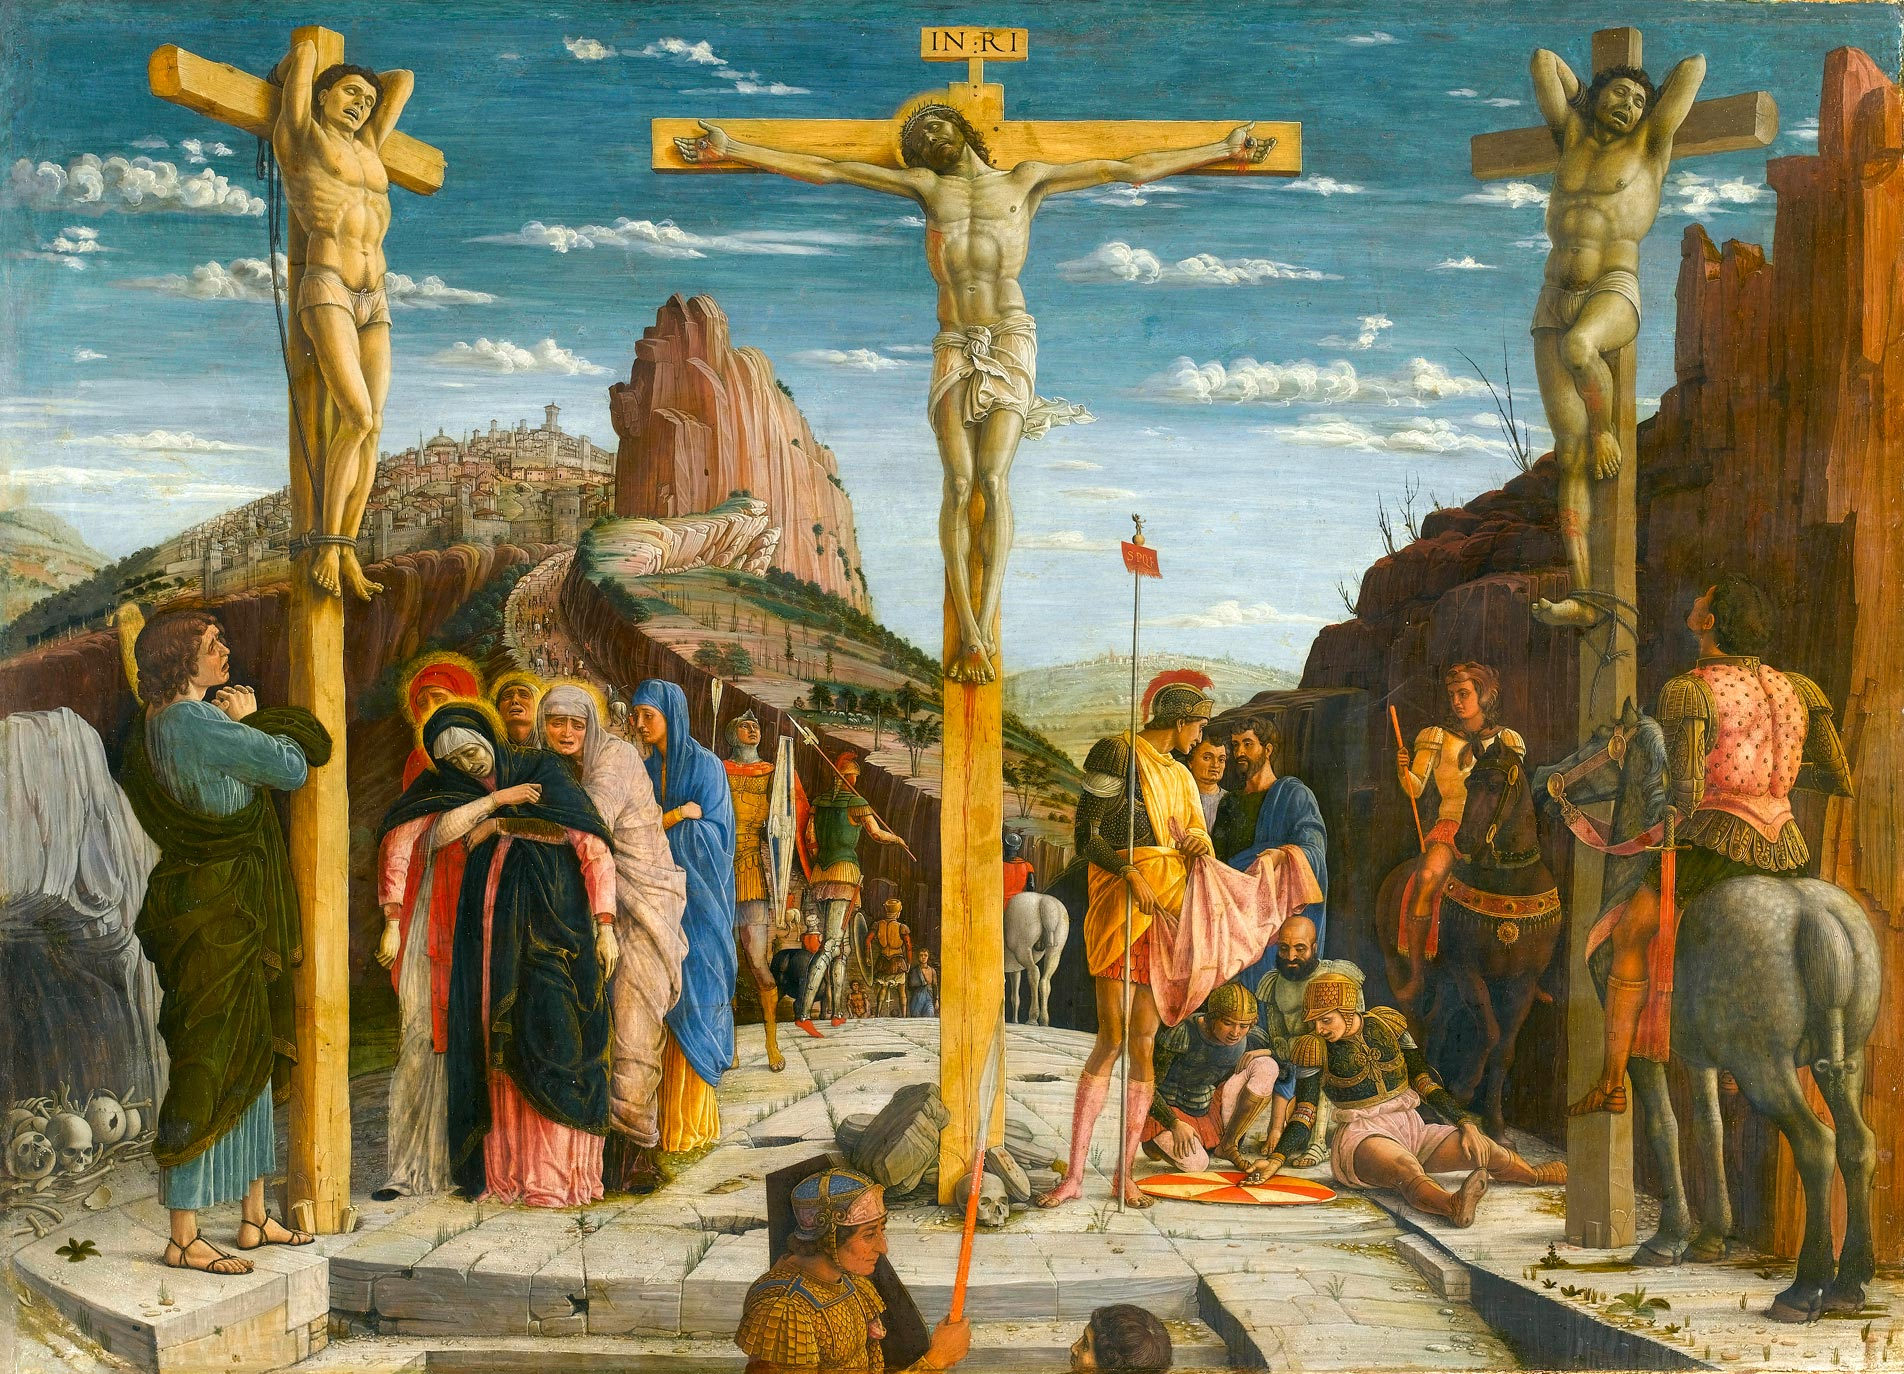 Crucifixion (Andrea Mantegna, ca. 1460, tempera on panel)